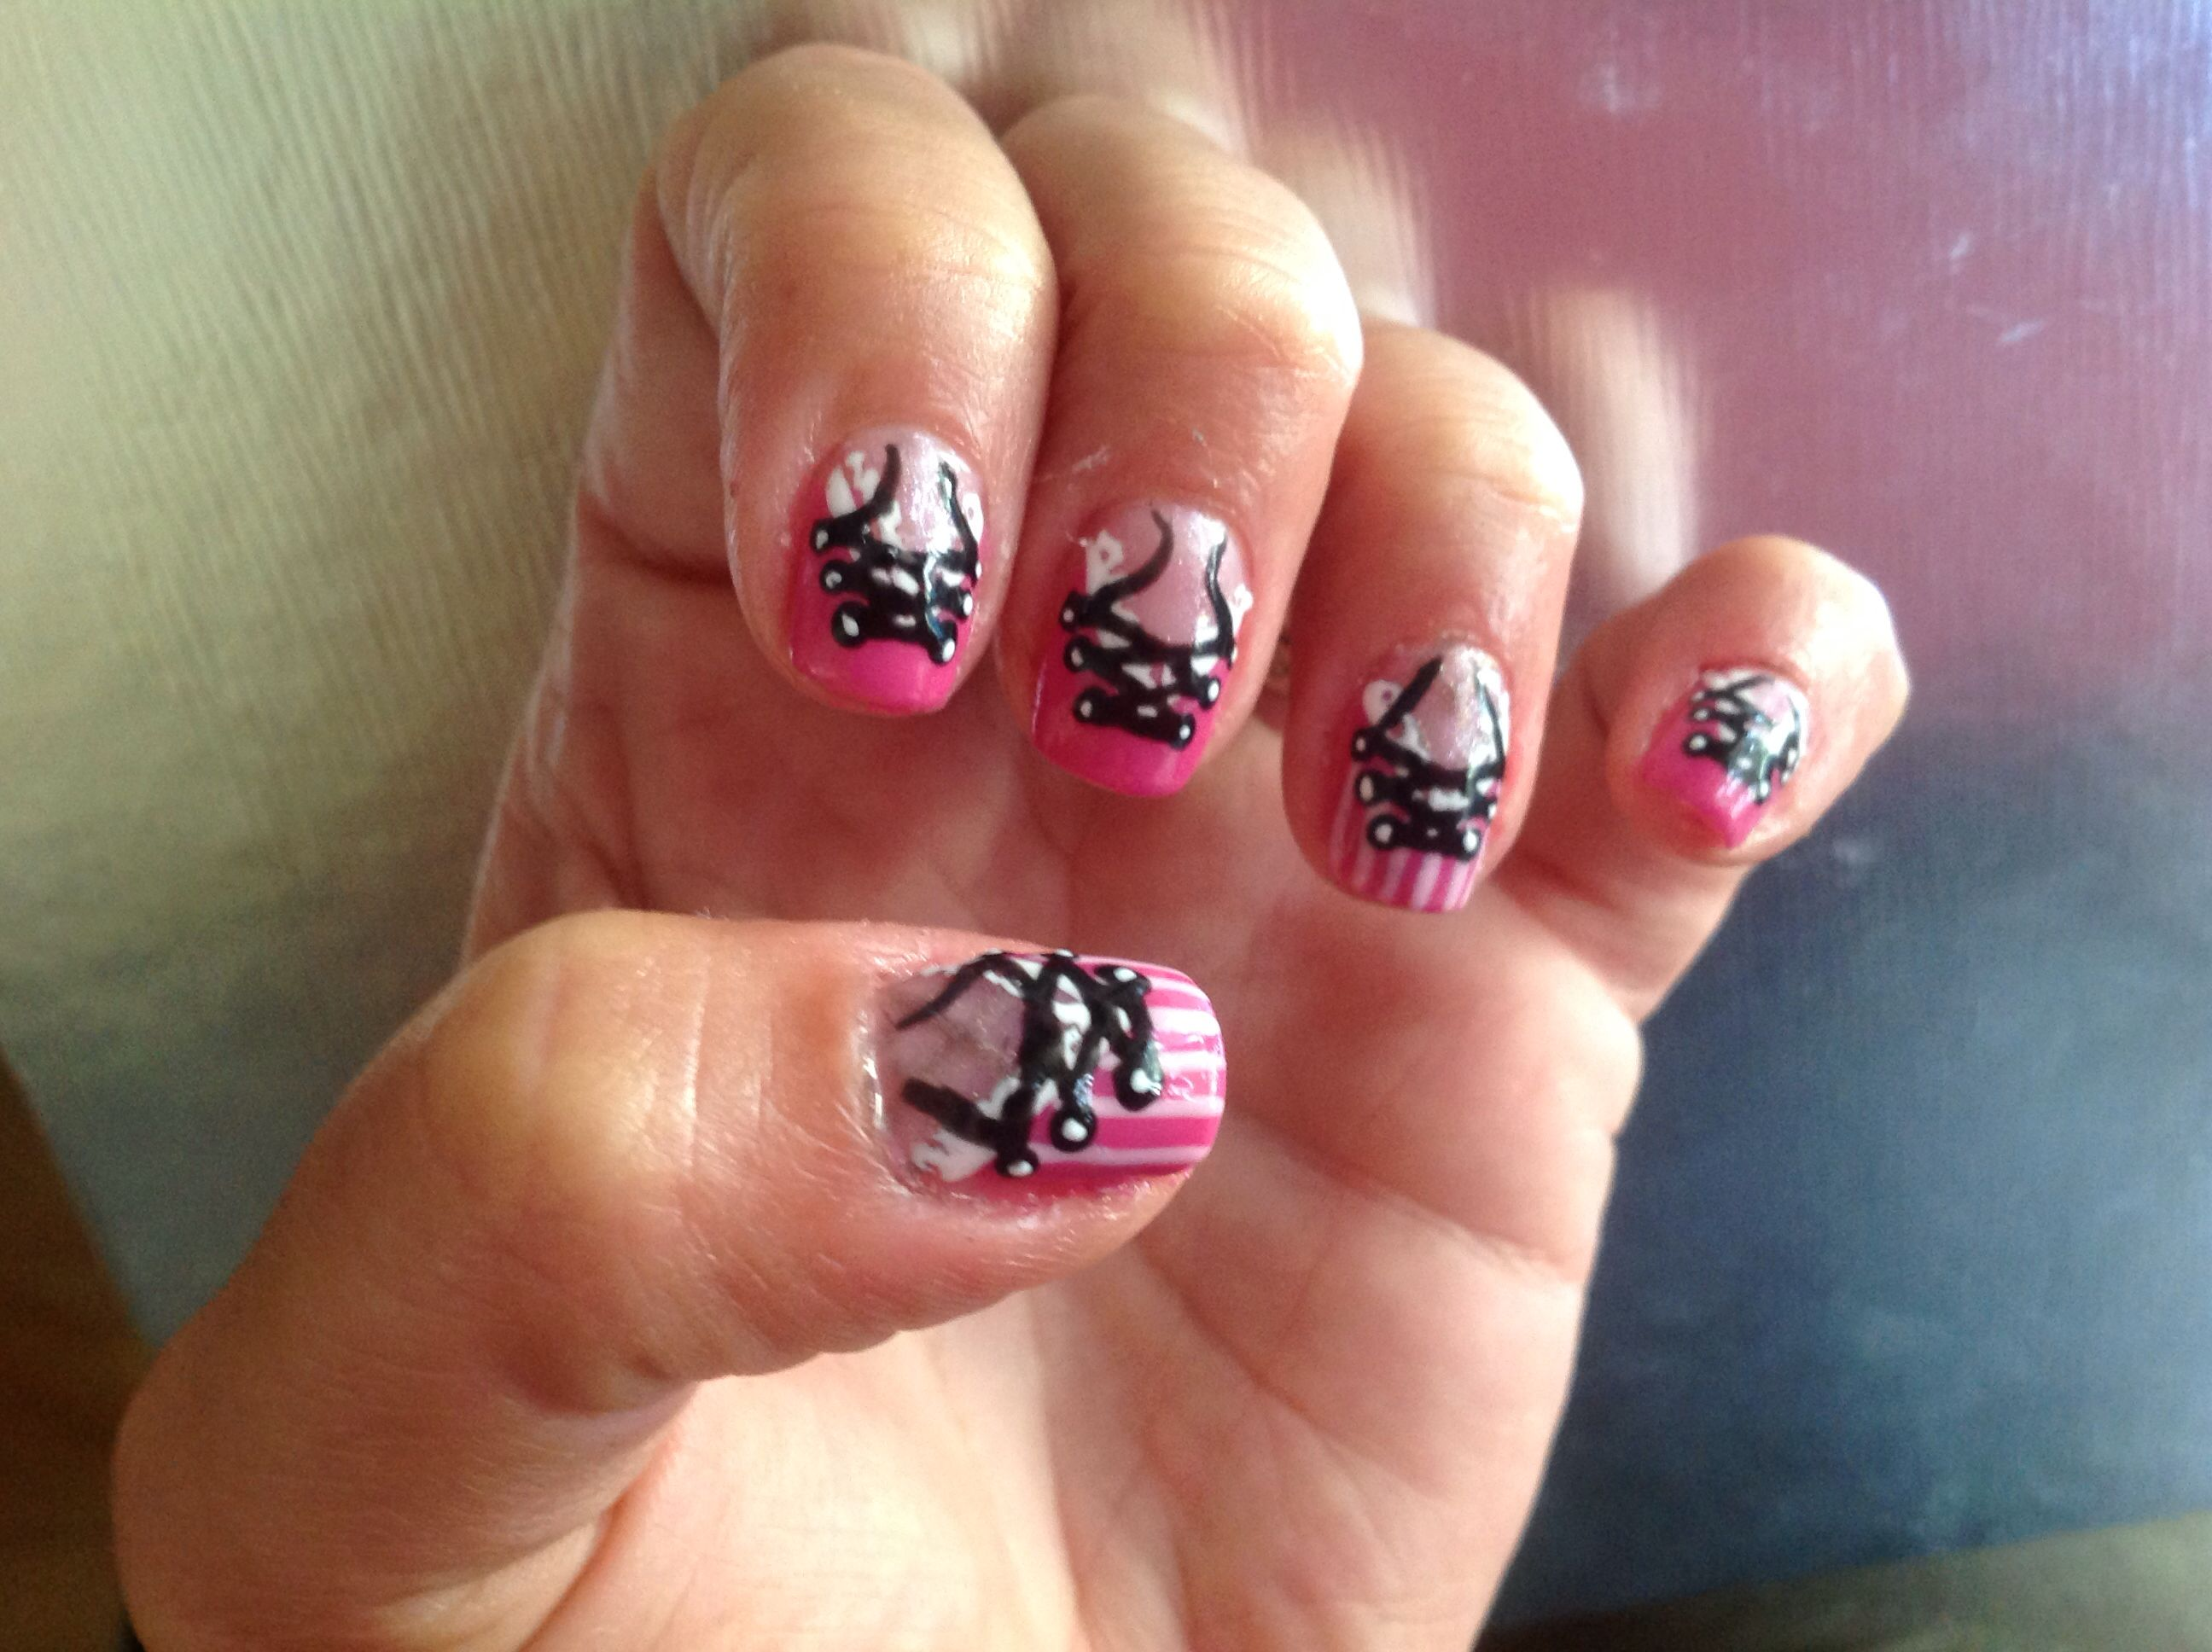 Corset done in uv gel polish & inspired by love4nails | nail art ...